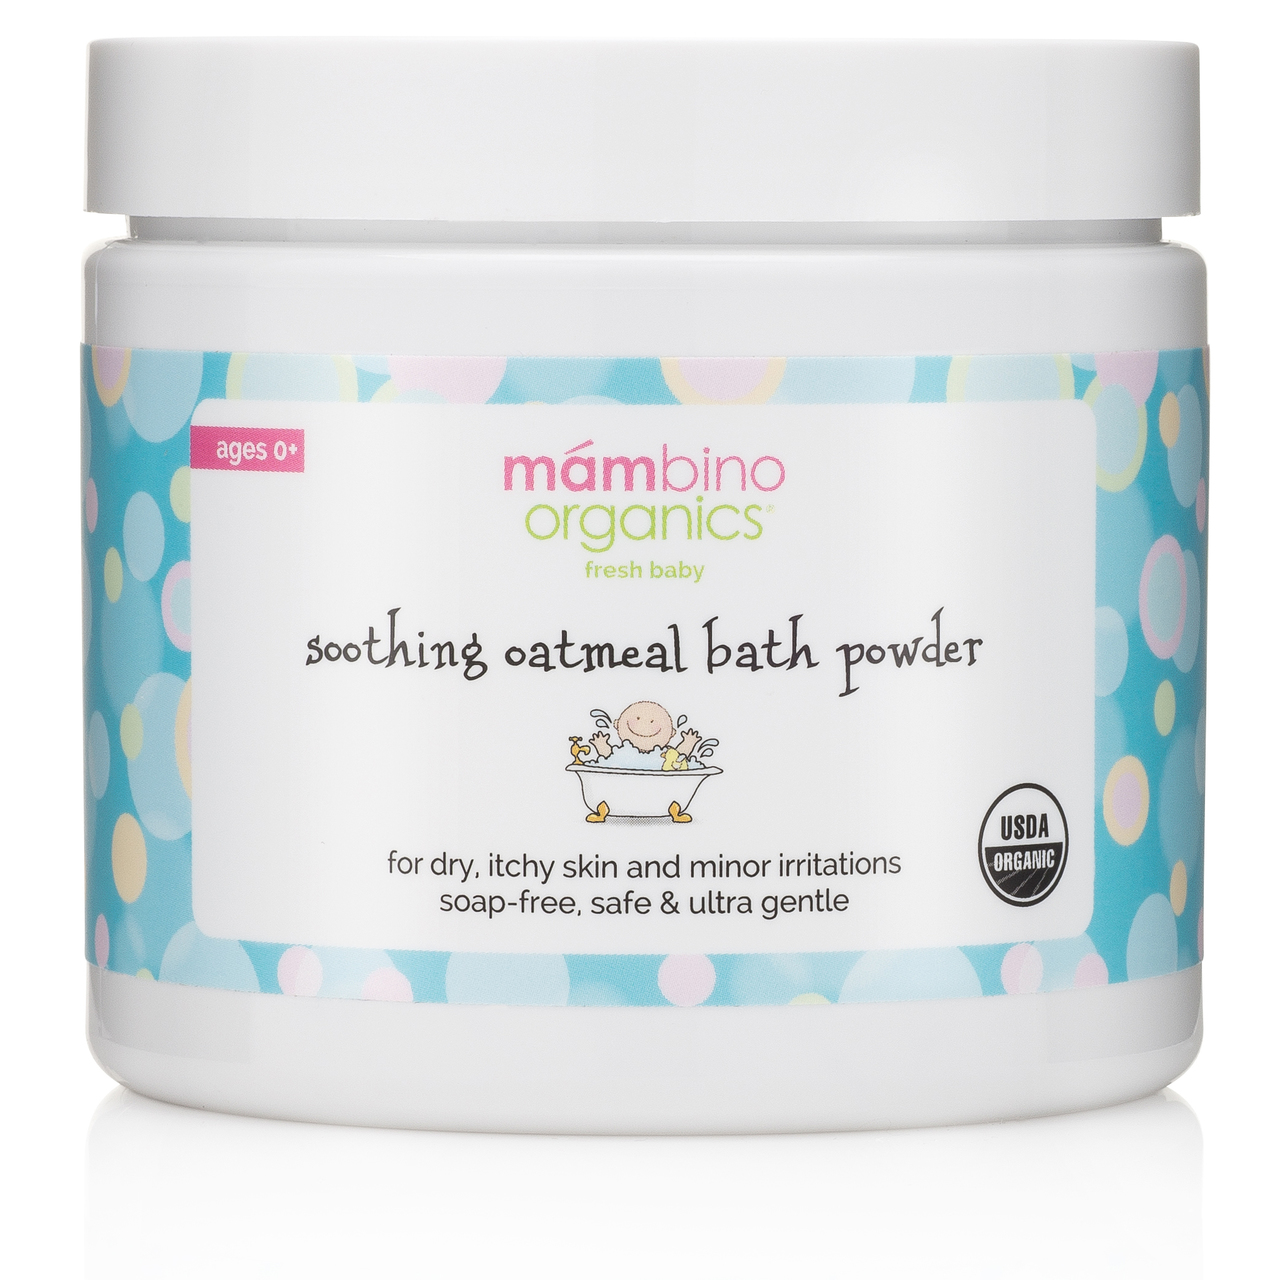 Jar of Mambino Organics oatmeal bath powder.